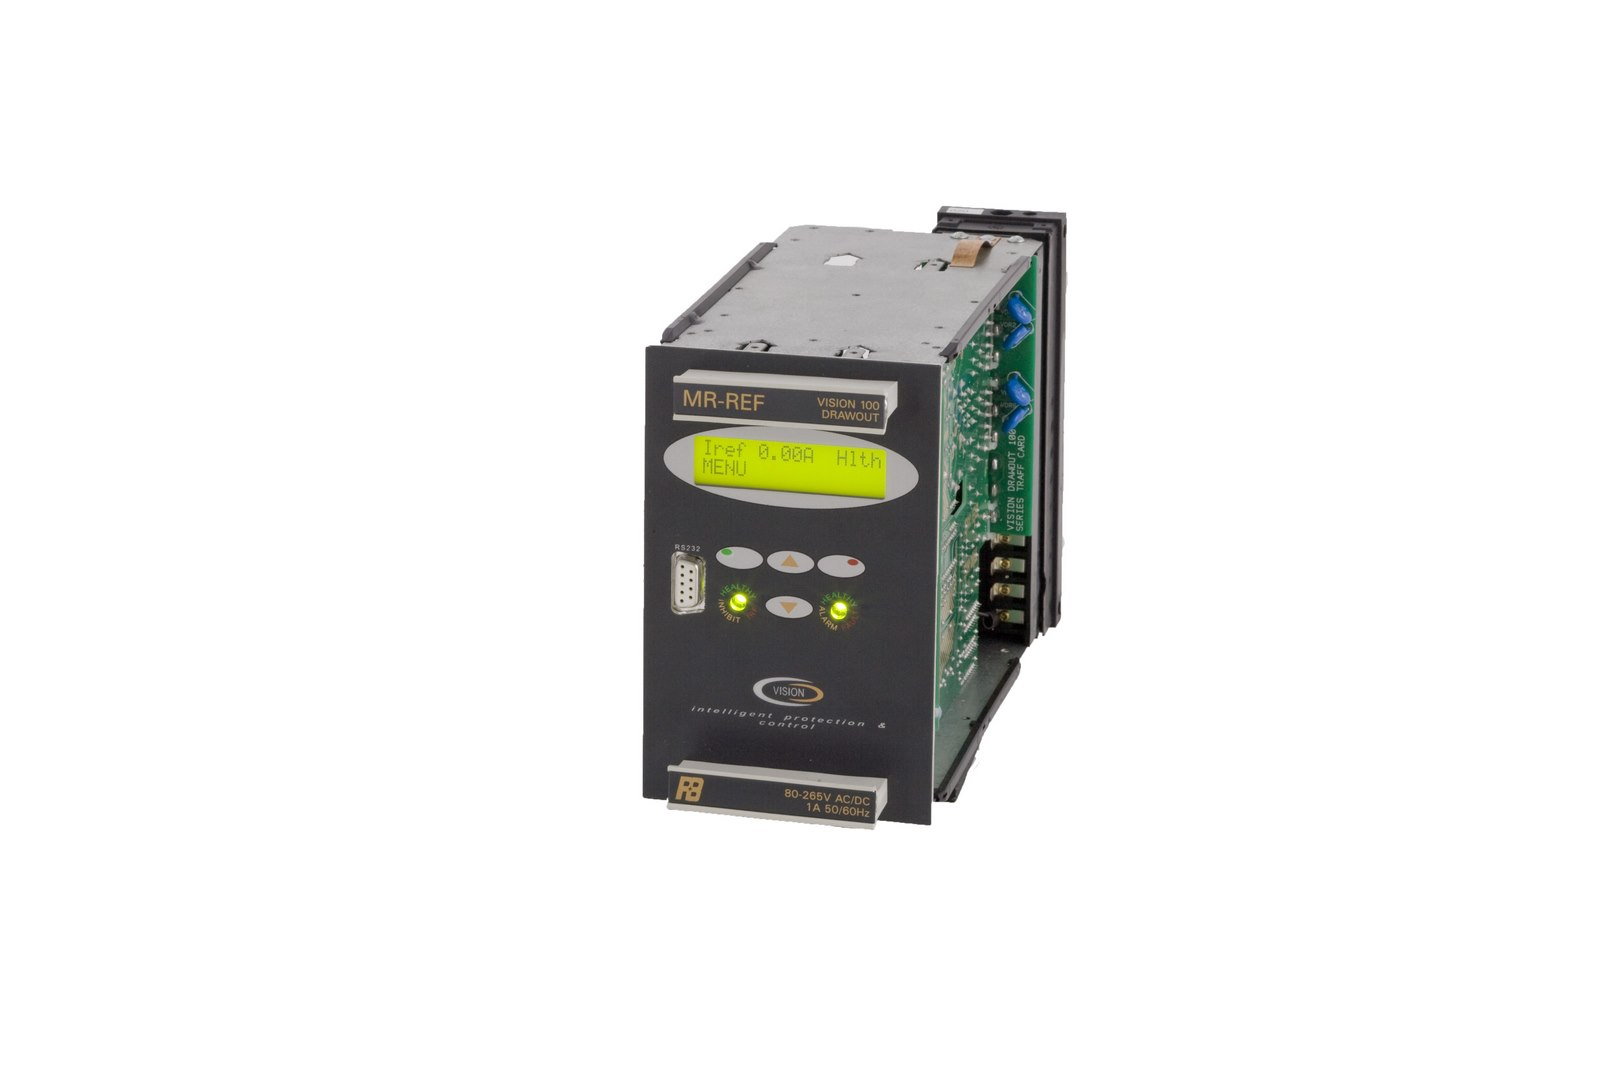 Pb Protection Relays Vision 100 Series Drawout Powered Relay Terminal 3 Cdg Our Site Uses Cookies To Distinguish You From Other Users And Help Provide With A Better Experience When Using